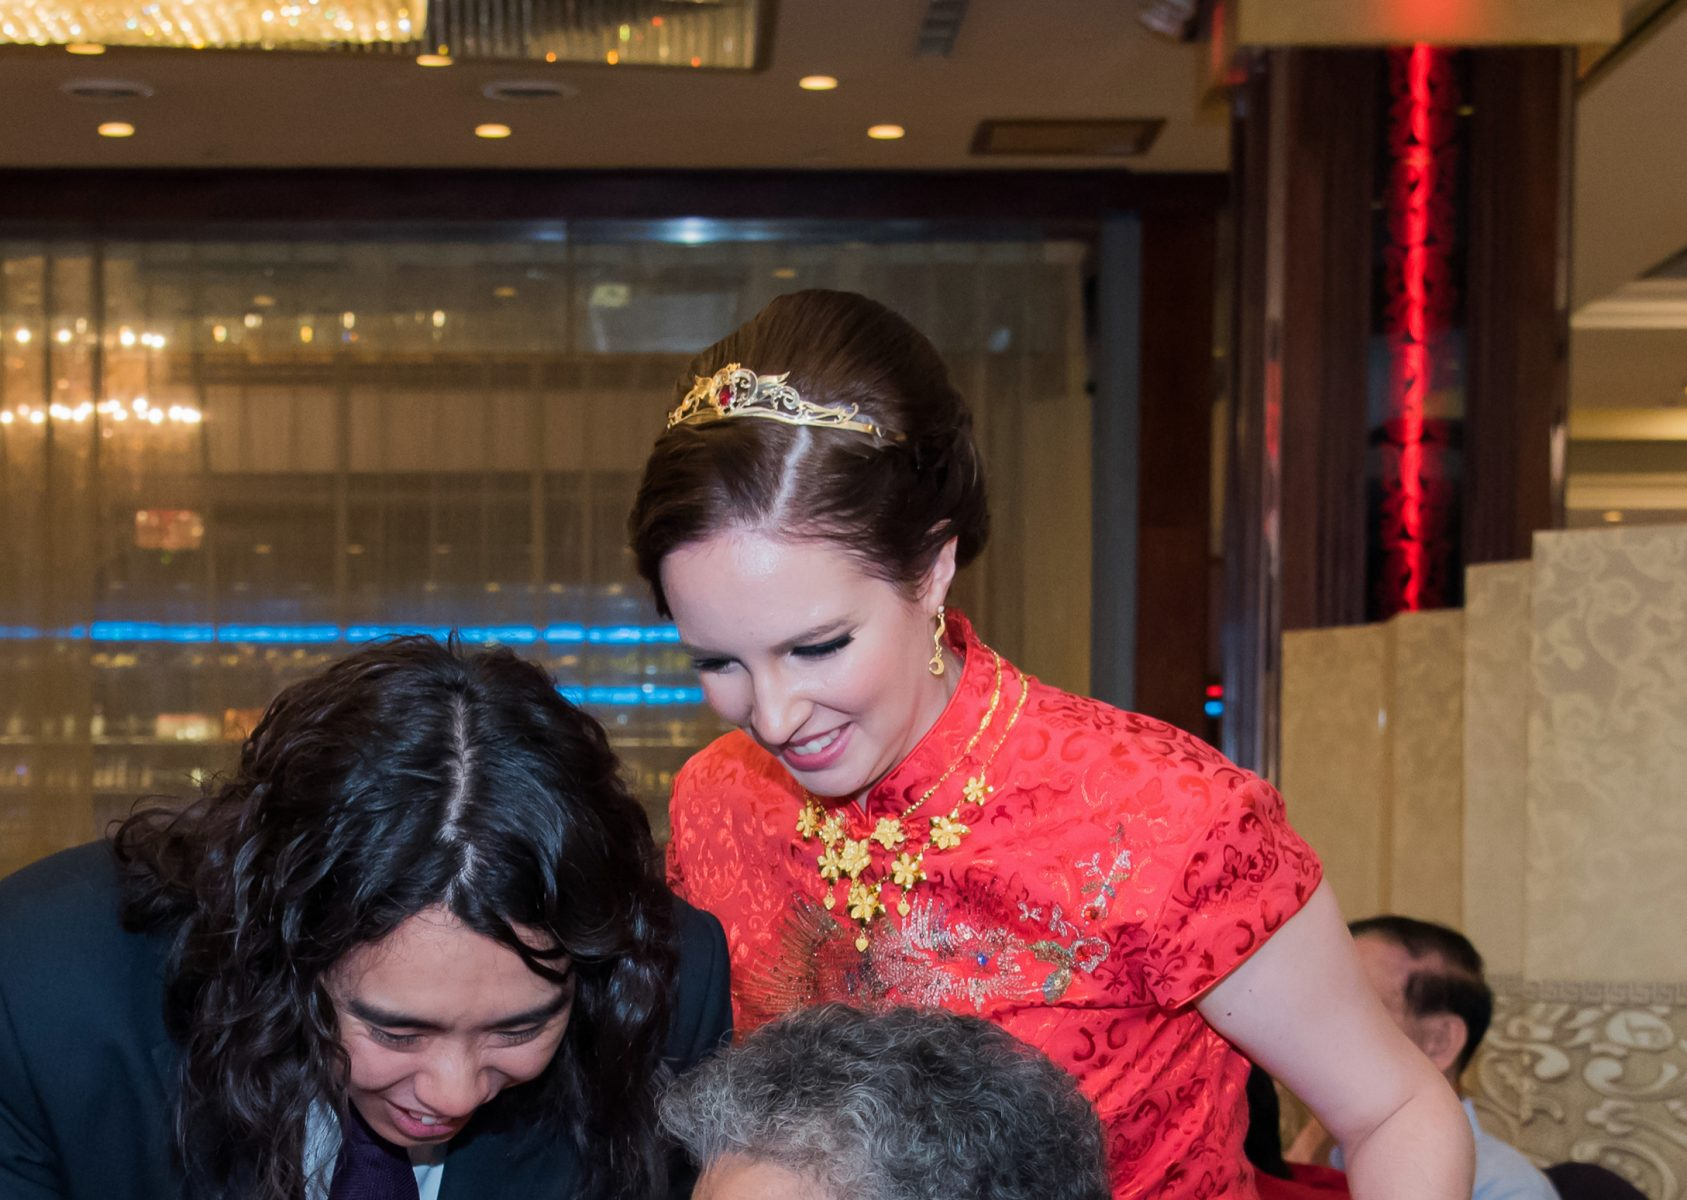 a young white woman wears a red qipao with a gold flower necklace, gold earrings and a gold tiara with a red stone